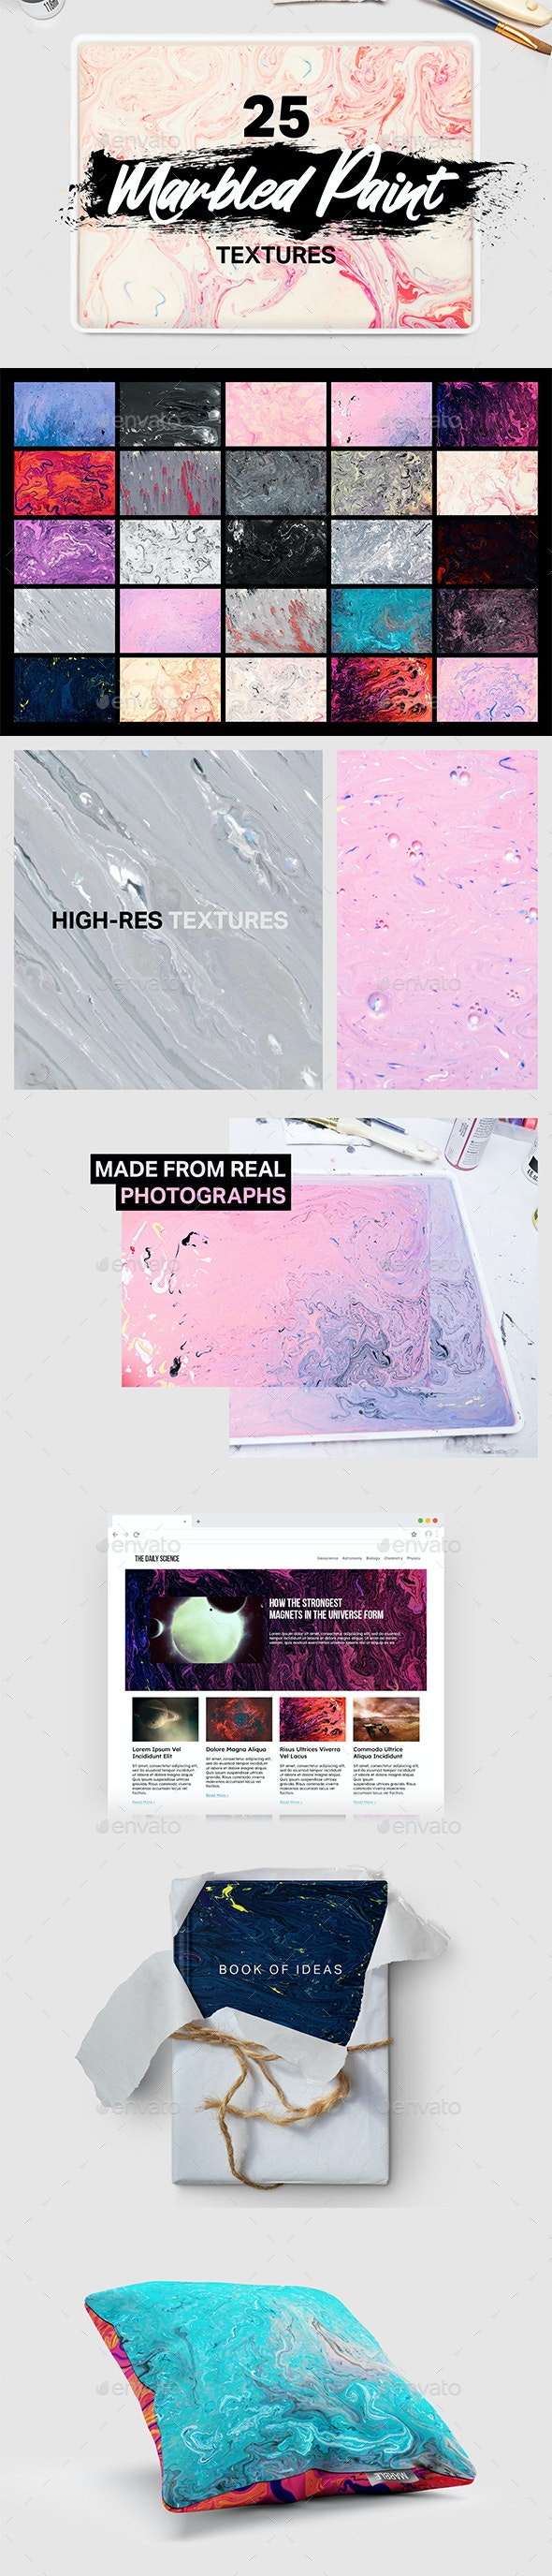 25 Real Marbled Paint Textures - Art Textures